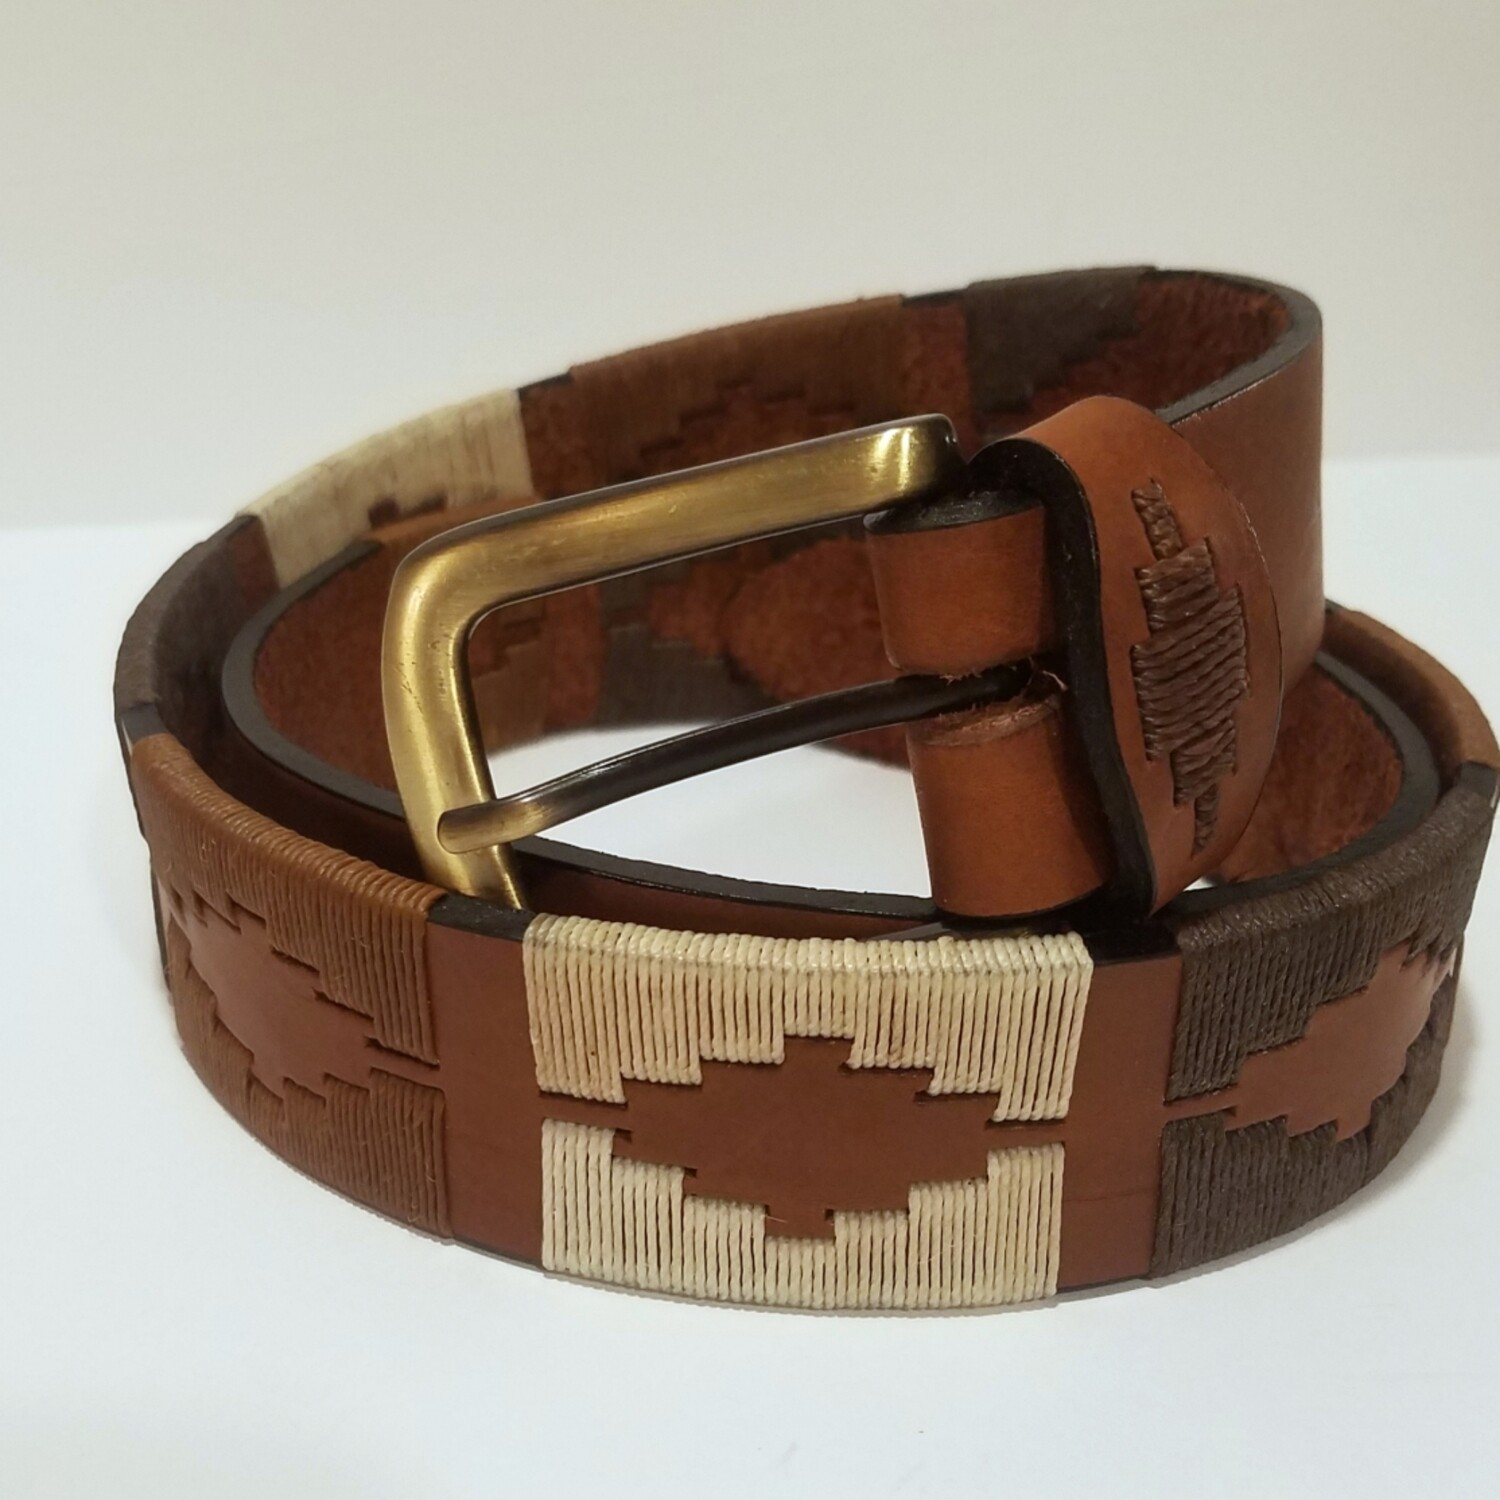 "Leather stitched Polo Belt Suelo 100CM (36-38"")"